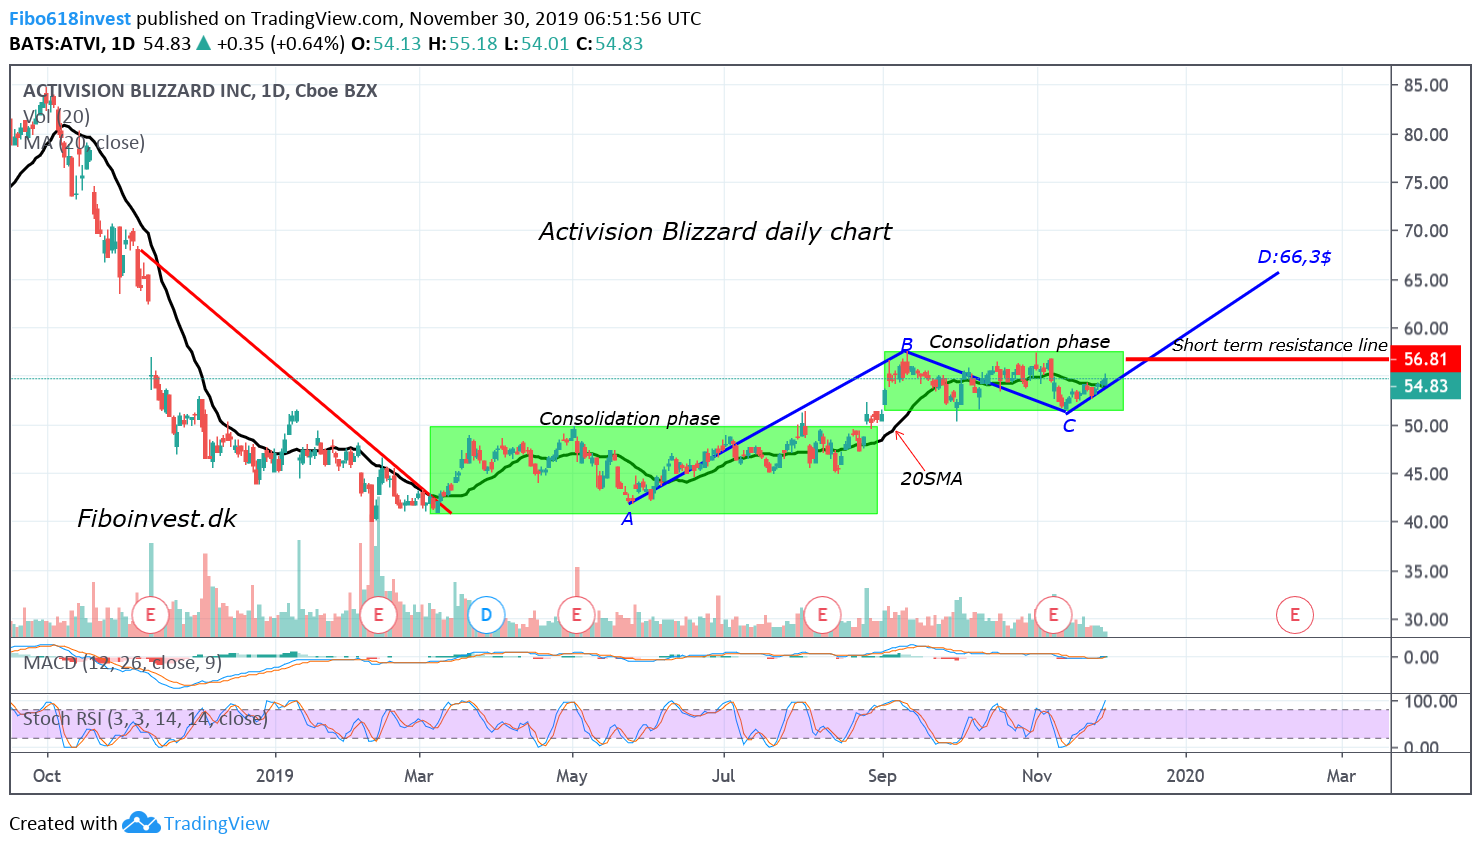 Ta af Activsion B daily chart 30-11-19